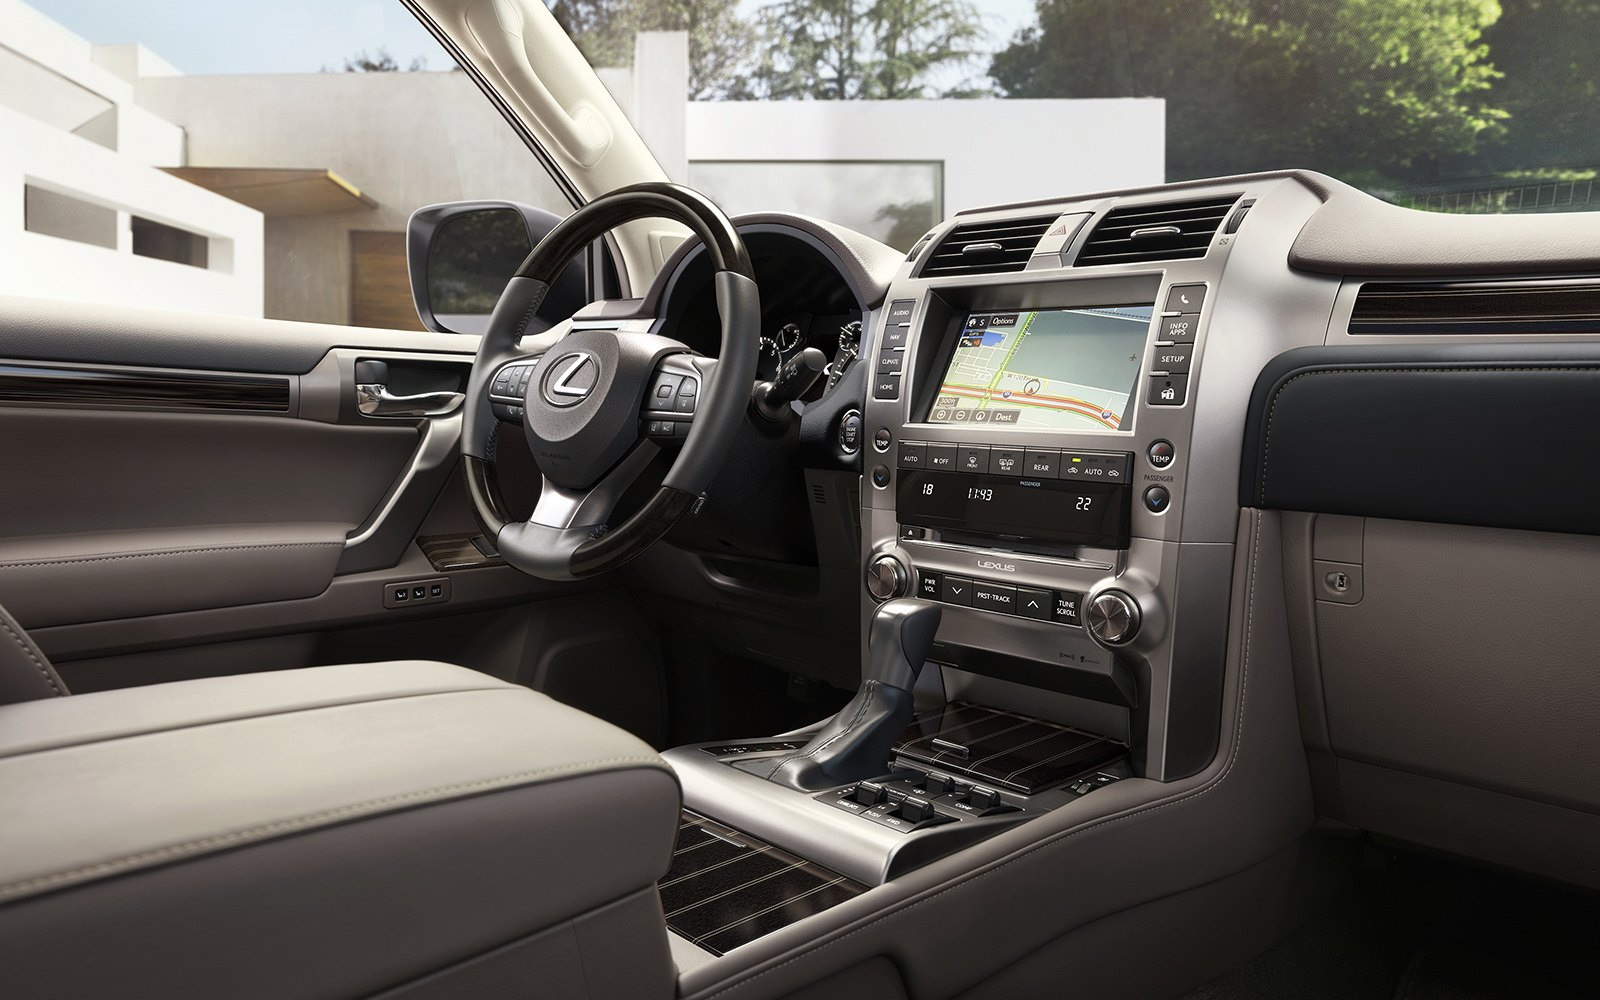 2020 Lexus GX Technology at Ken Shaw Lexus in Toronto